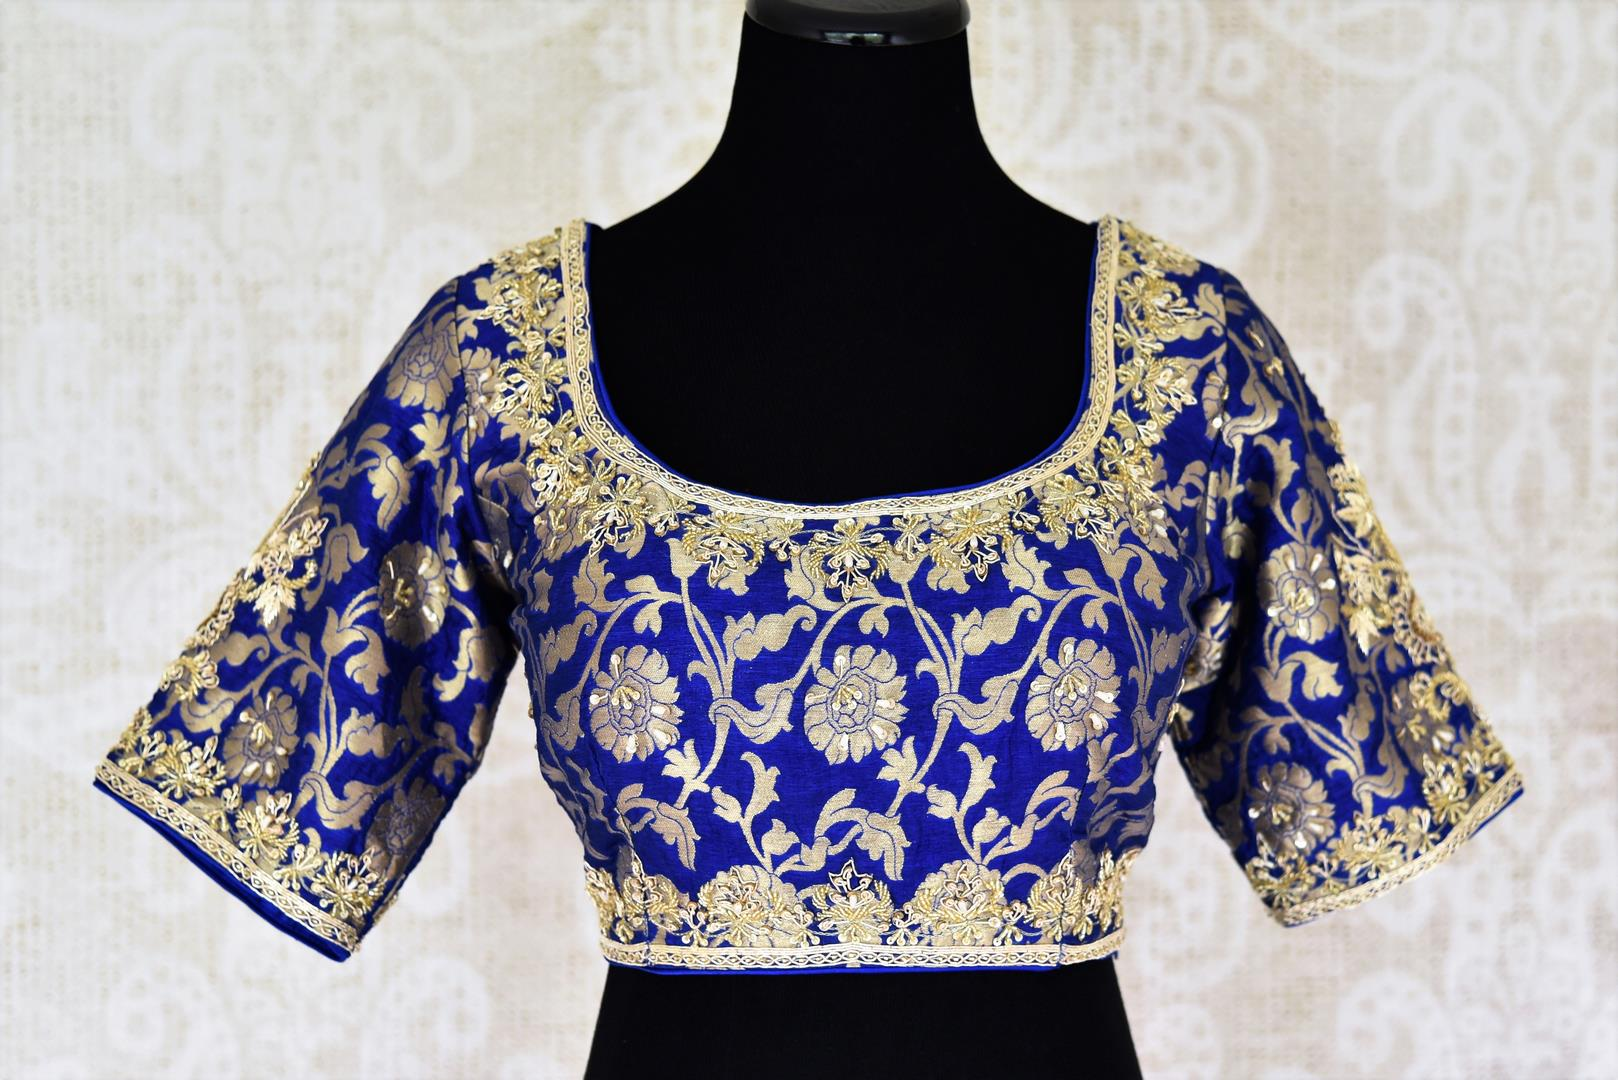 Buy beautiful blue Banarasi embroidered readymade saree blouse online in USA. Match your saree with exquisite designer saree blouses from Pure Elegance clothing store in USA. Shop now at our store or visit online.-front